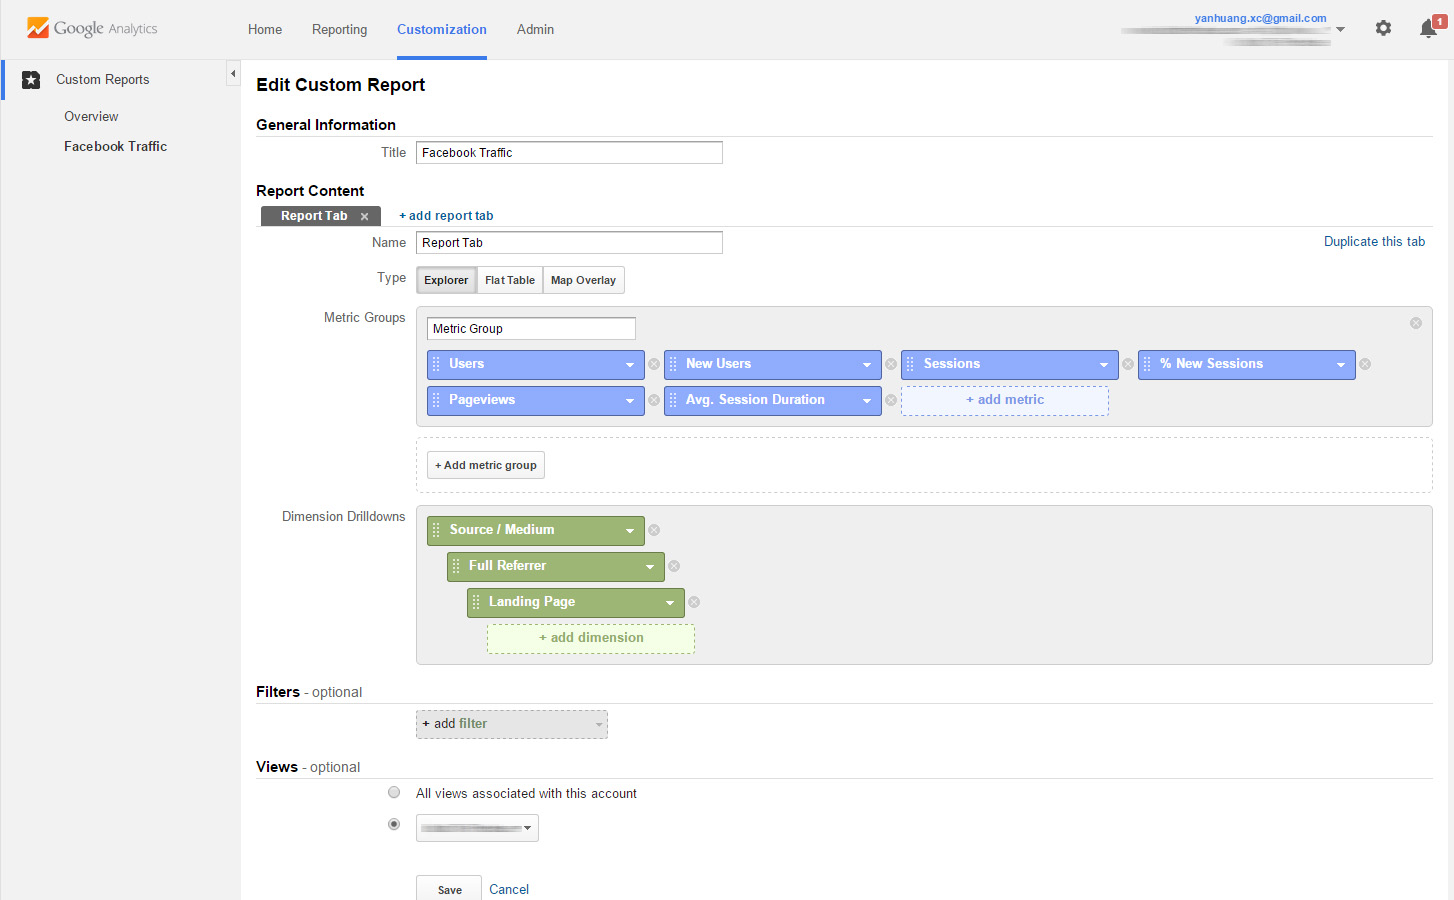 Google Analytics Custom Reports